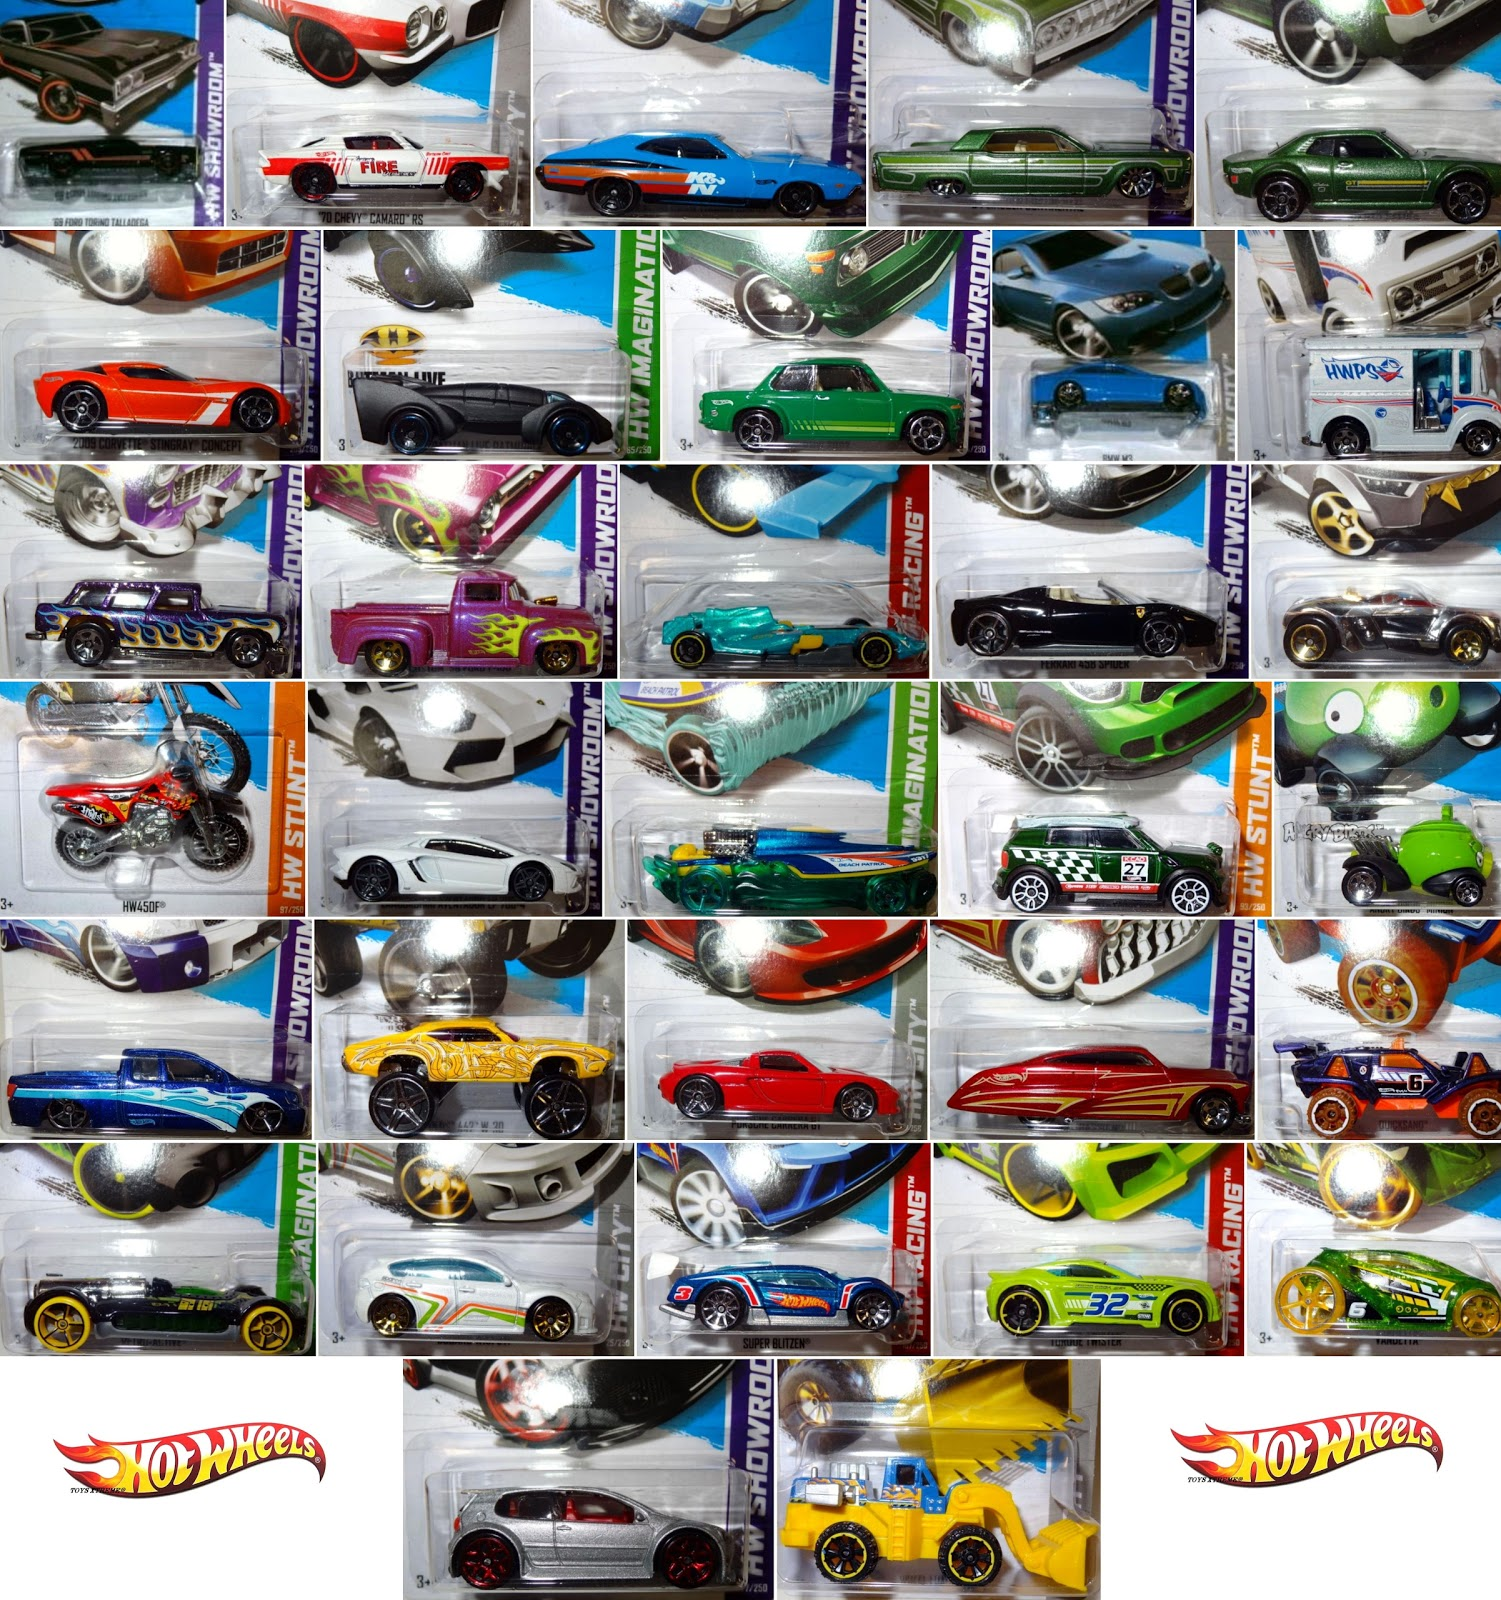 Kelvinator21's Hot Wheels